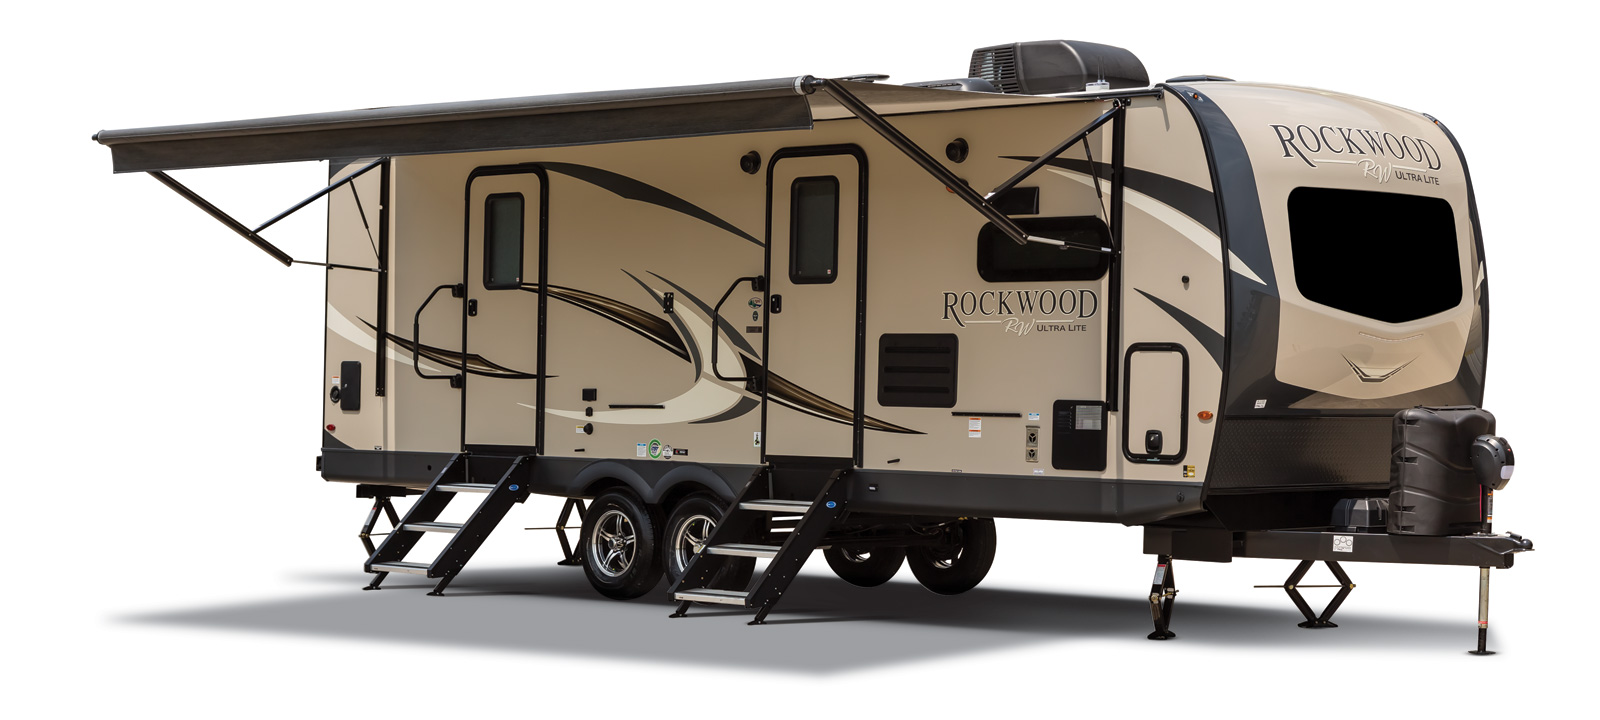 rockwood ultra lite travel trailer exterior